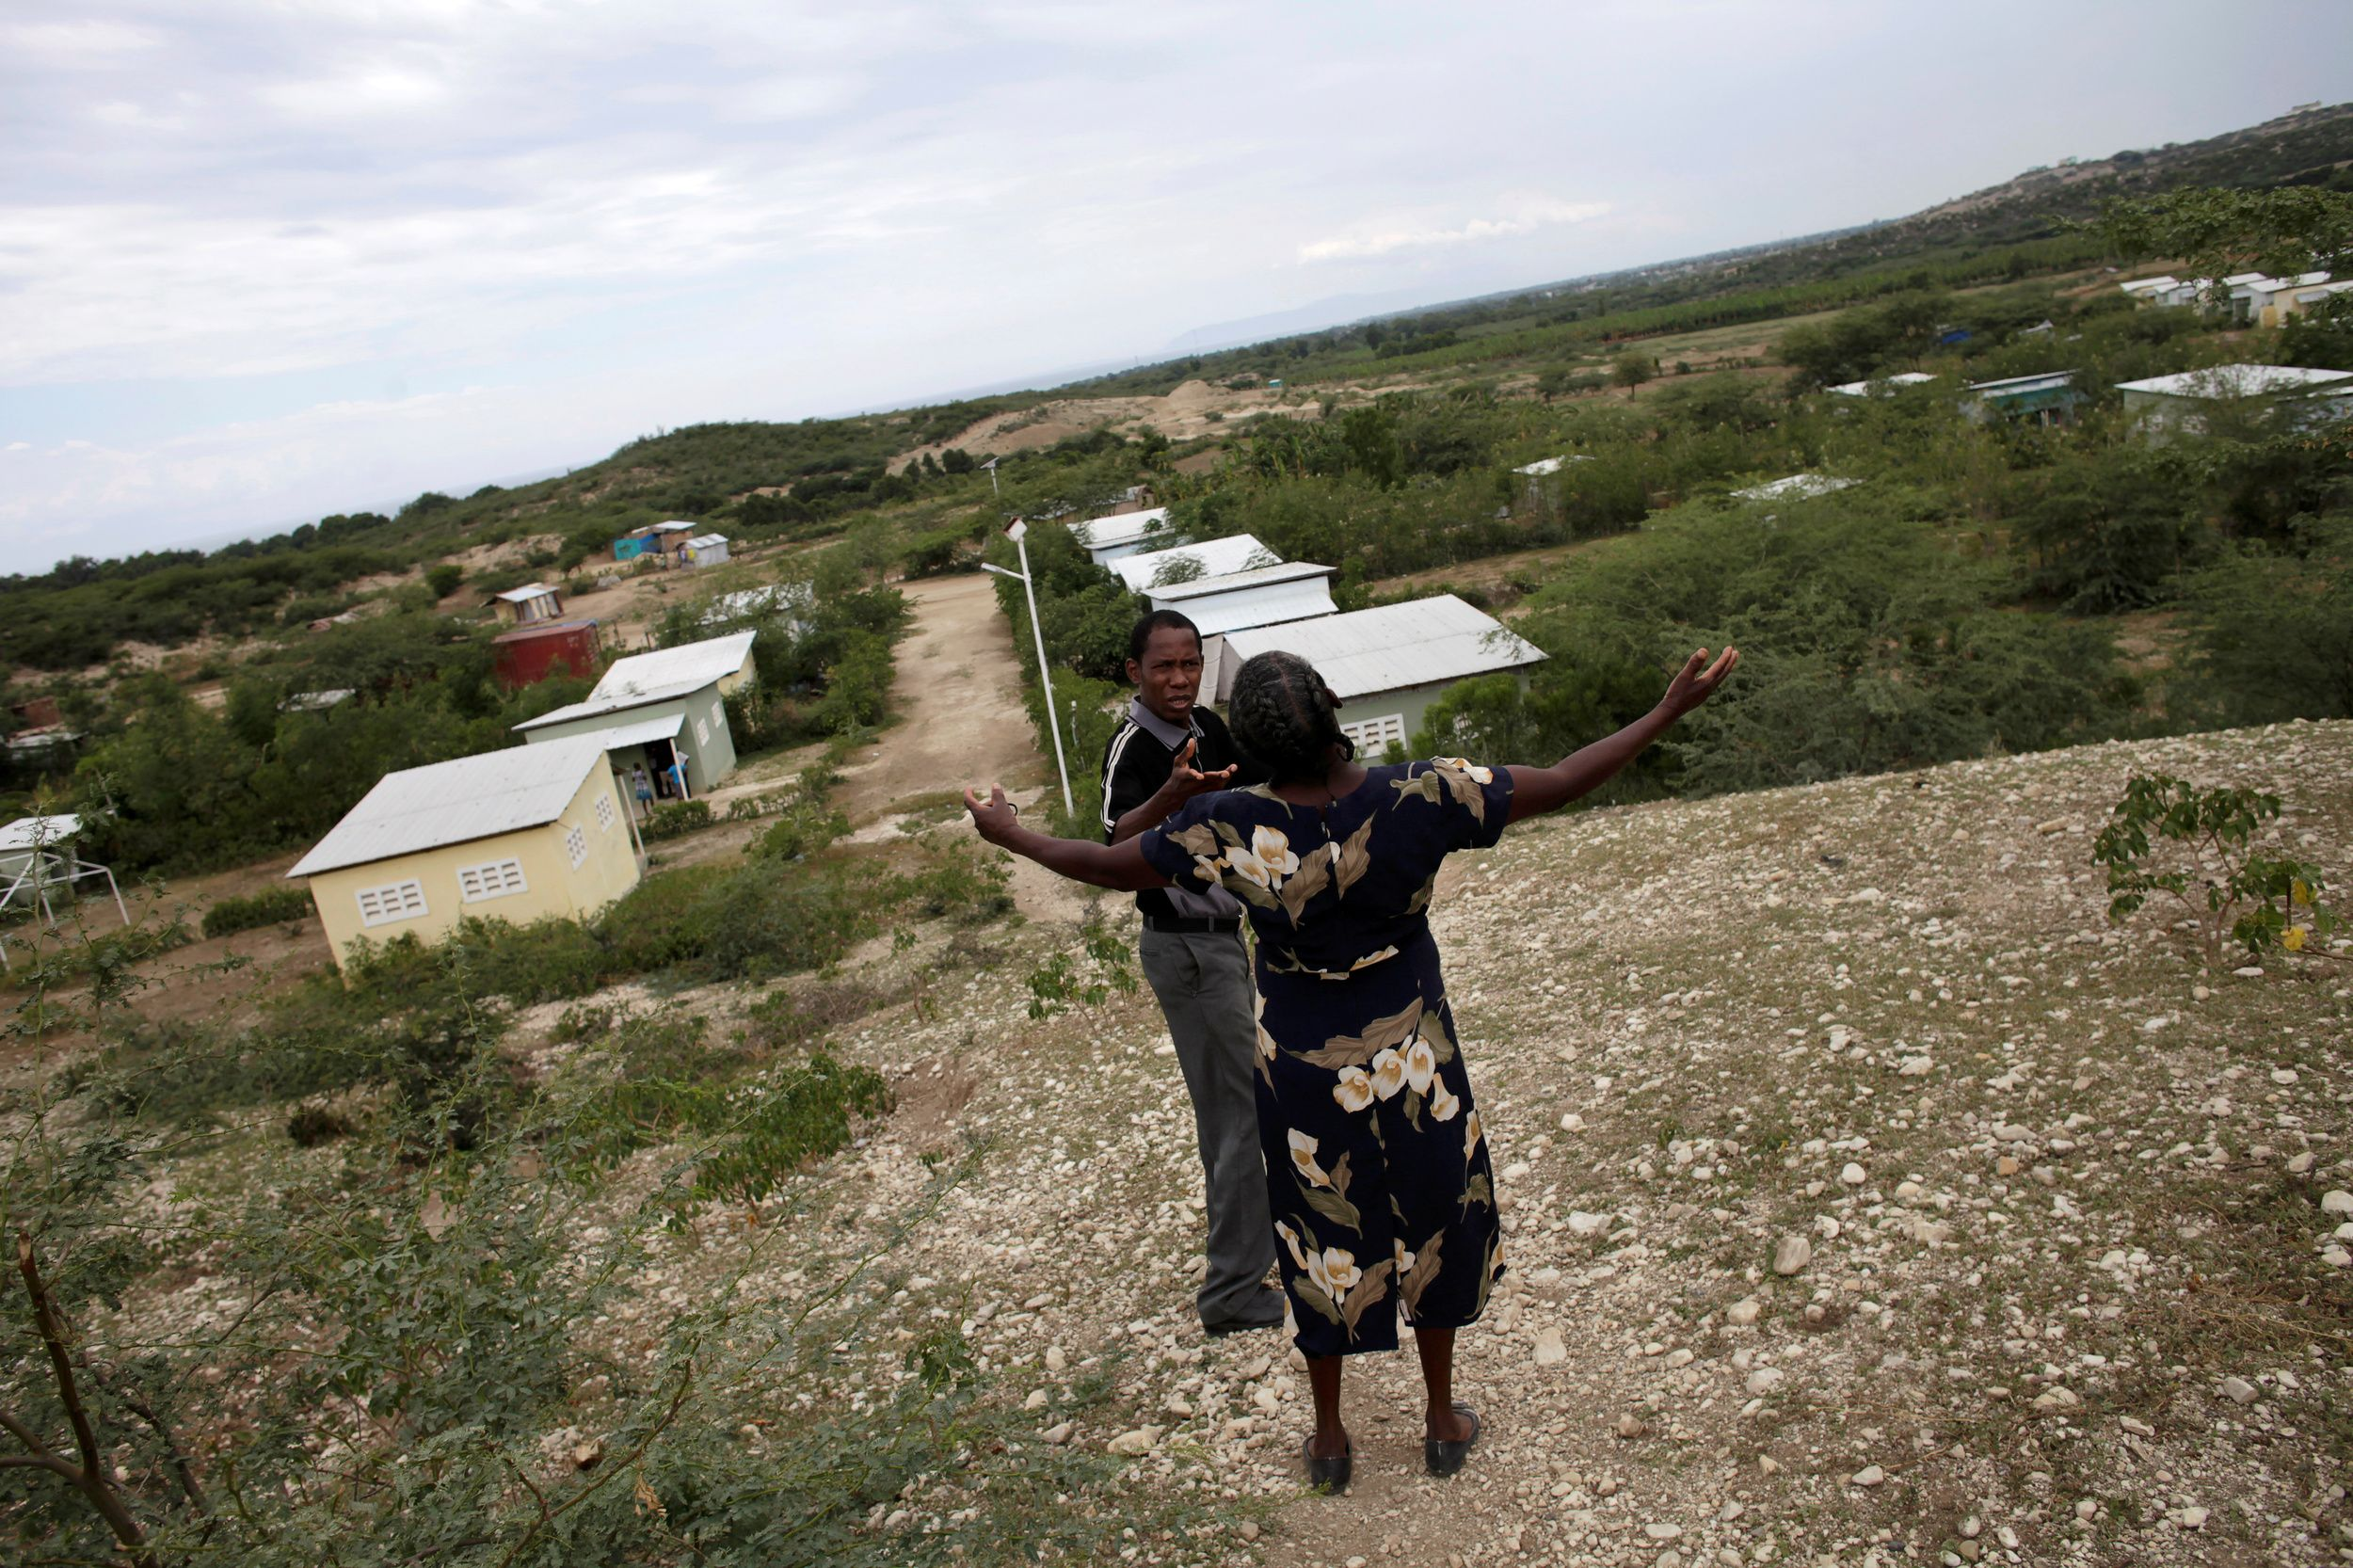 Leveque, Haiti houses for deaf | Thought provoking | Pinterest | Haiti